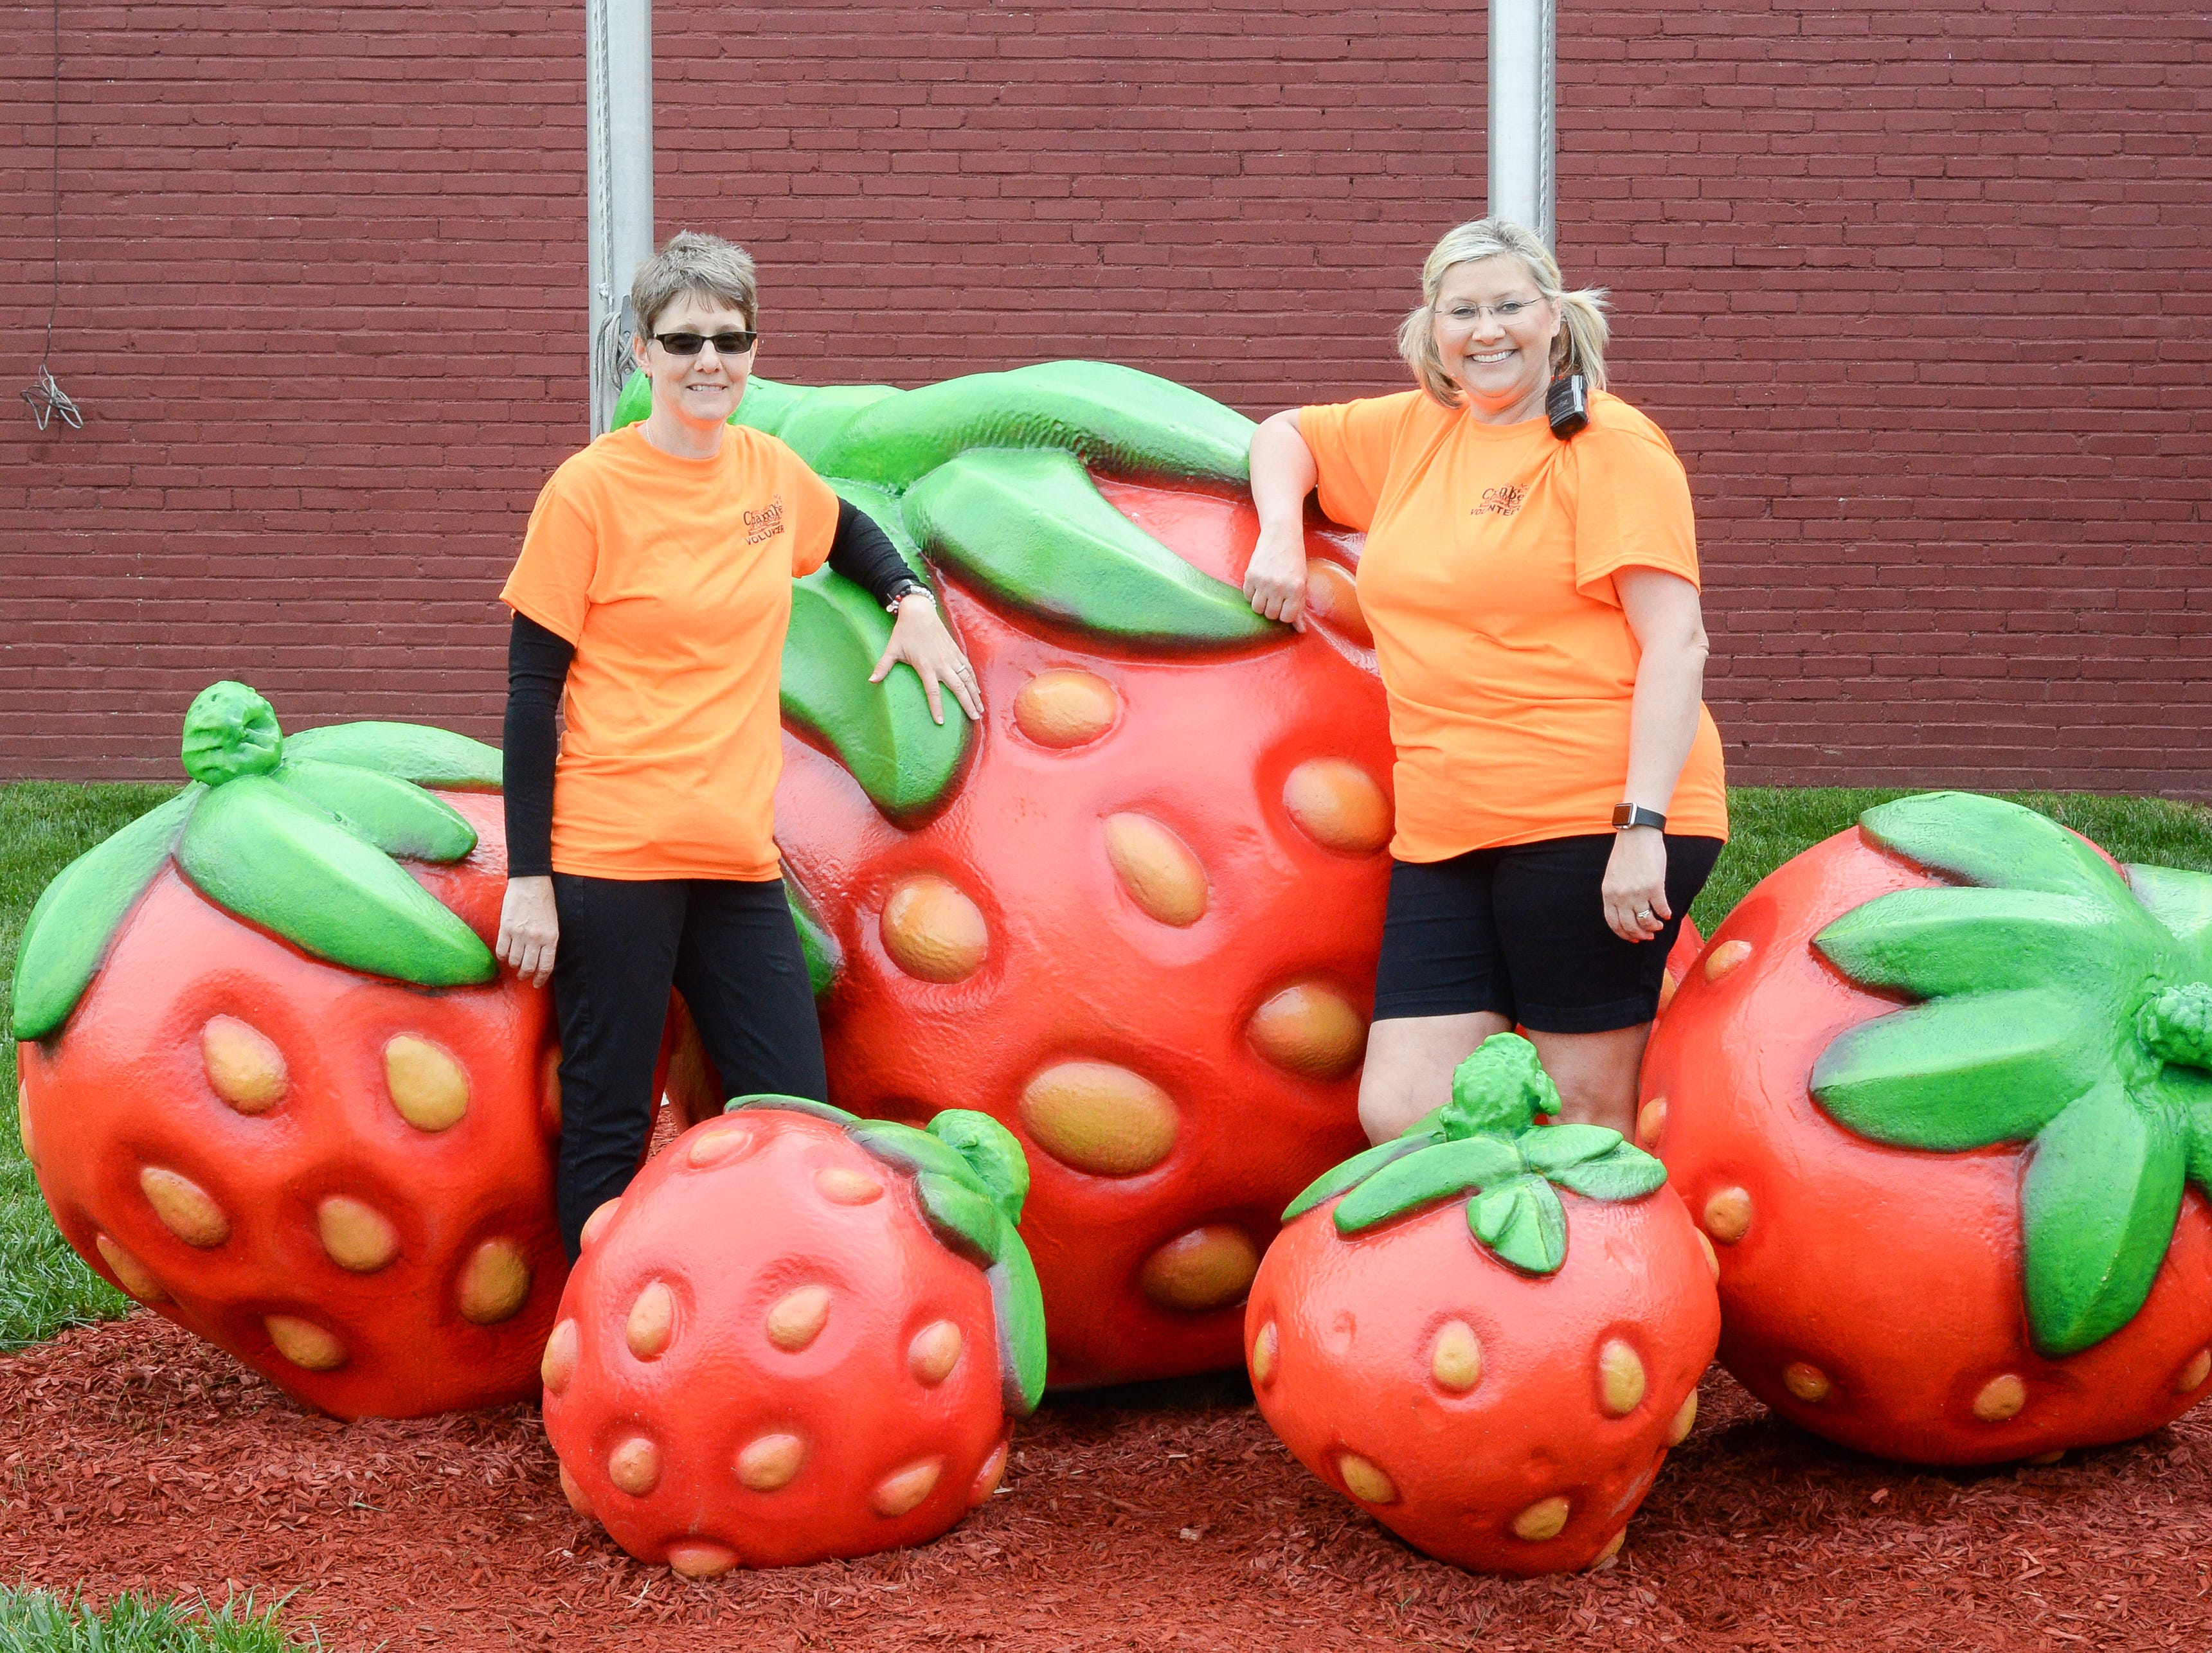 Portland Chamber of Commerce Board Member Kim Rice and Sherri Ferguson, President & CEO of the Portland Chamber of Commerce, work to make the 78th Annual Middle Tennessee Strawberry Festival a success in Portland on Saturday, May 11.